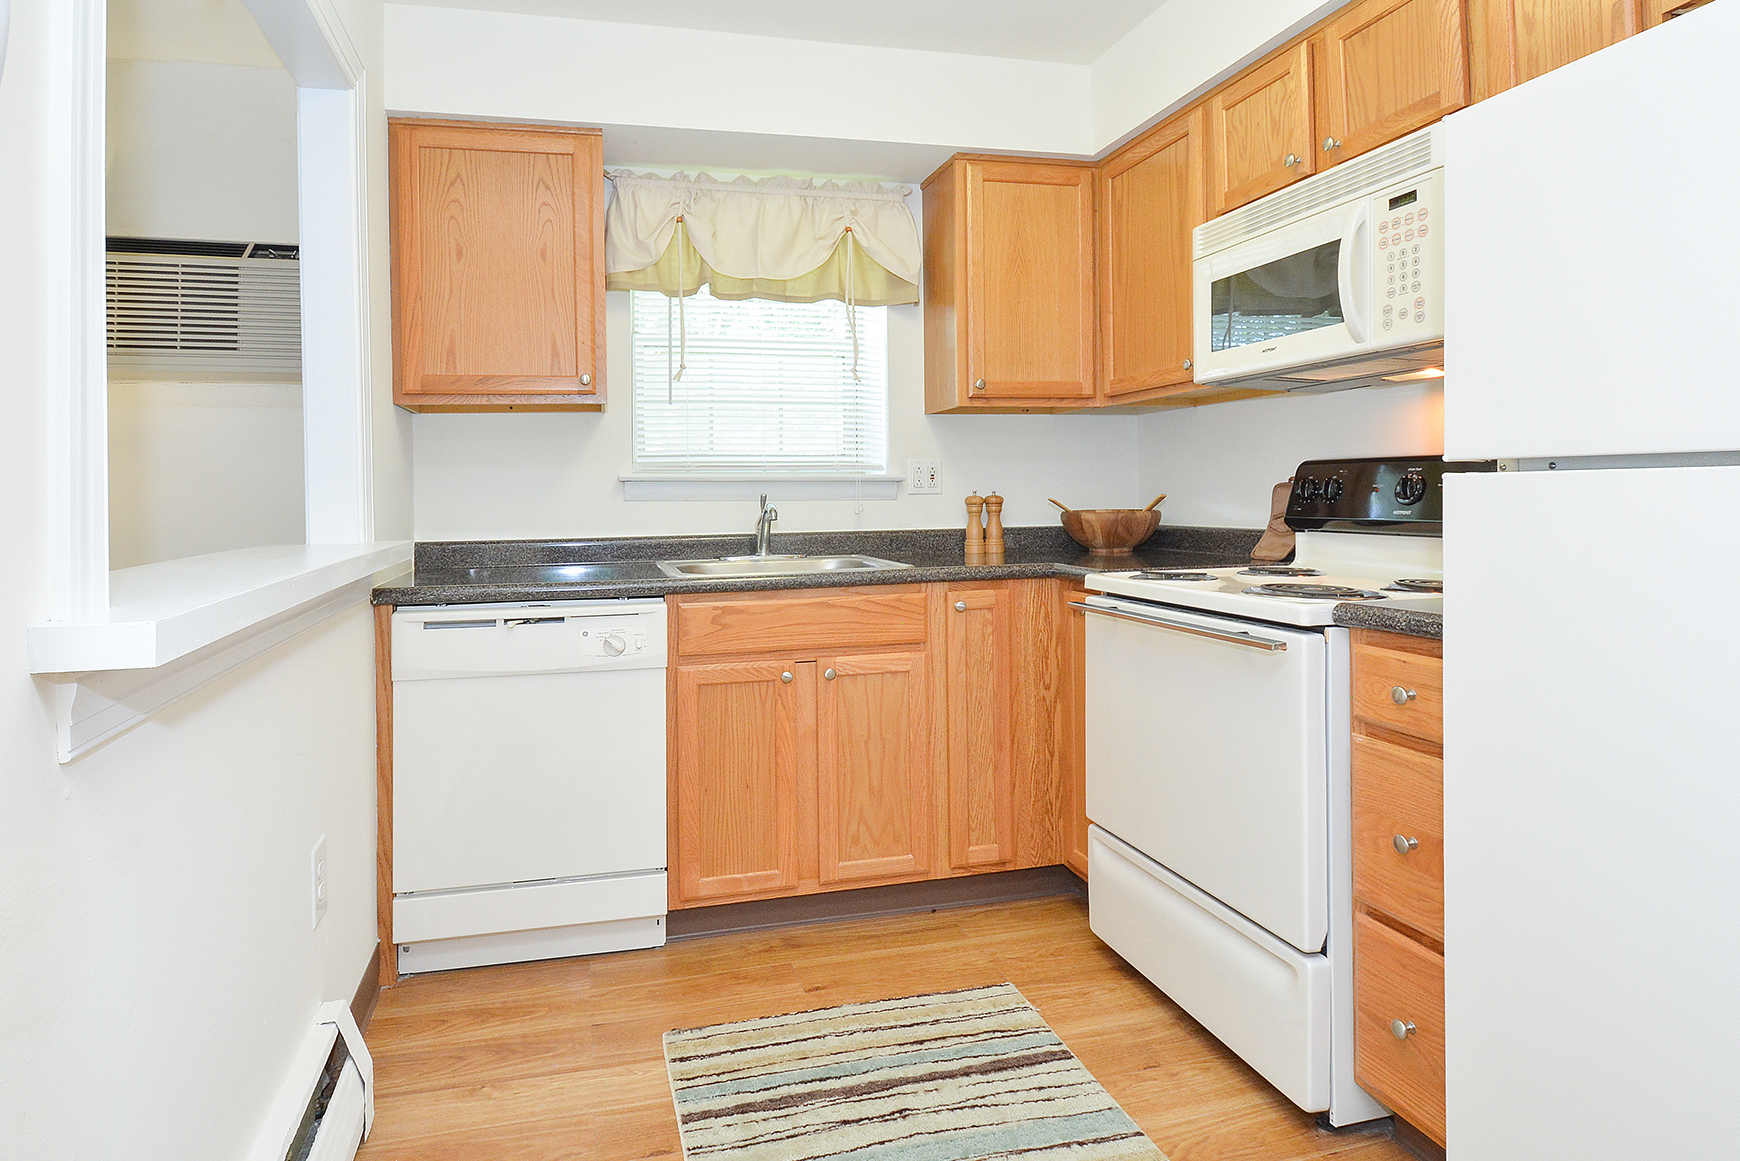 Elegant Kitchen | Apartments in Claymont, DE | Naamans Village Apartments